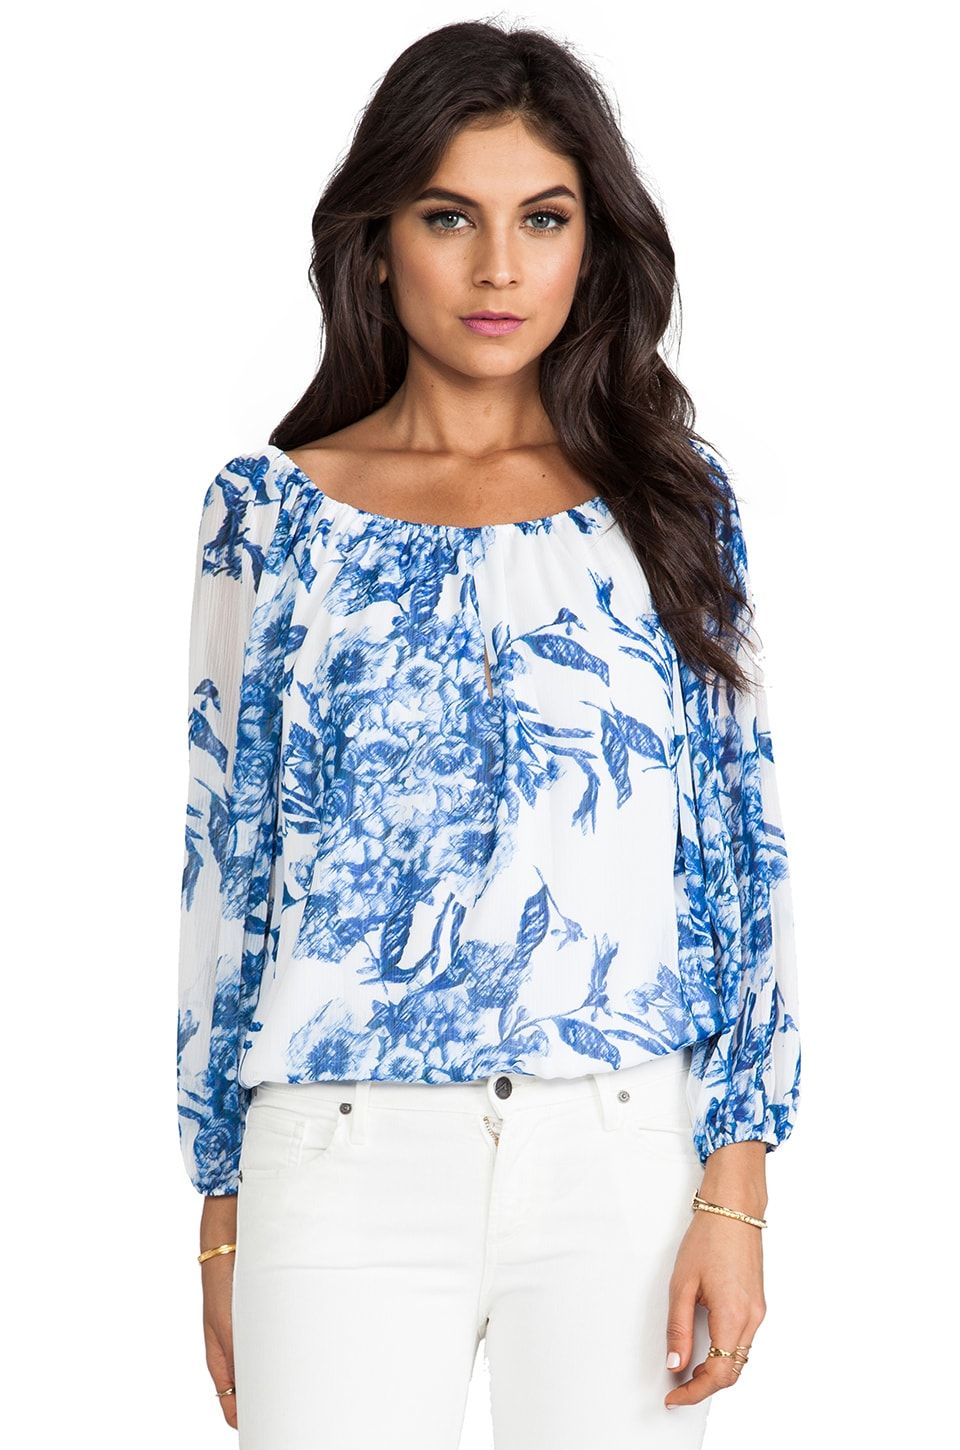 Alice + Olivia Keyhole Front Blouson Top in Etched Floral